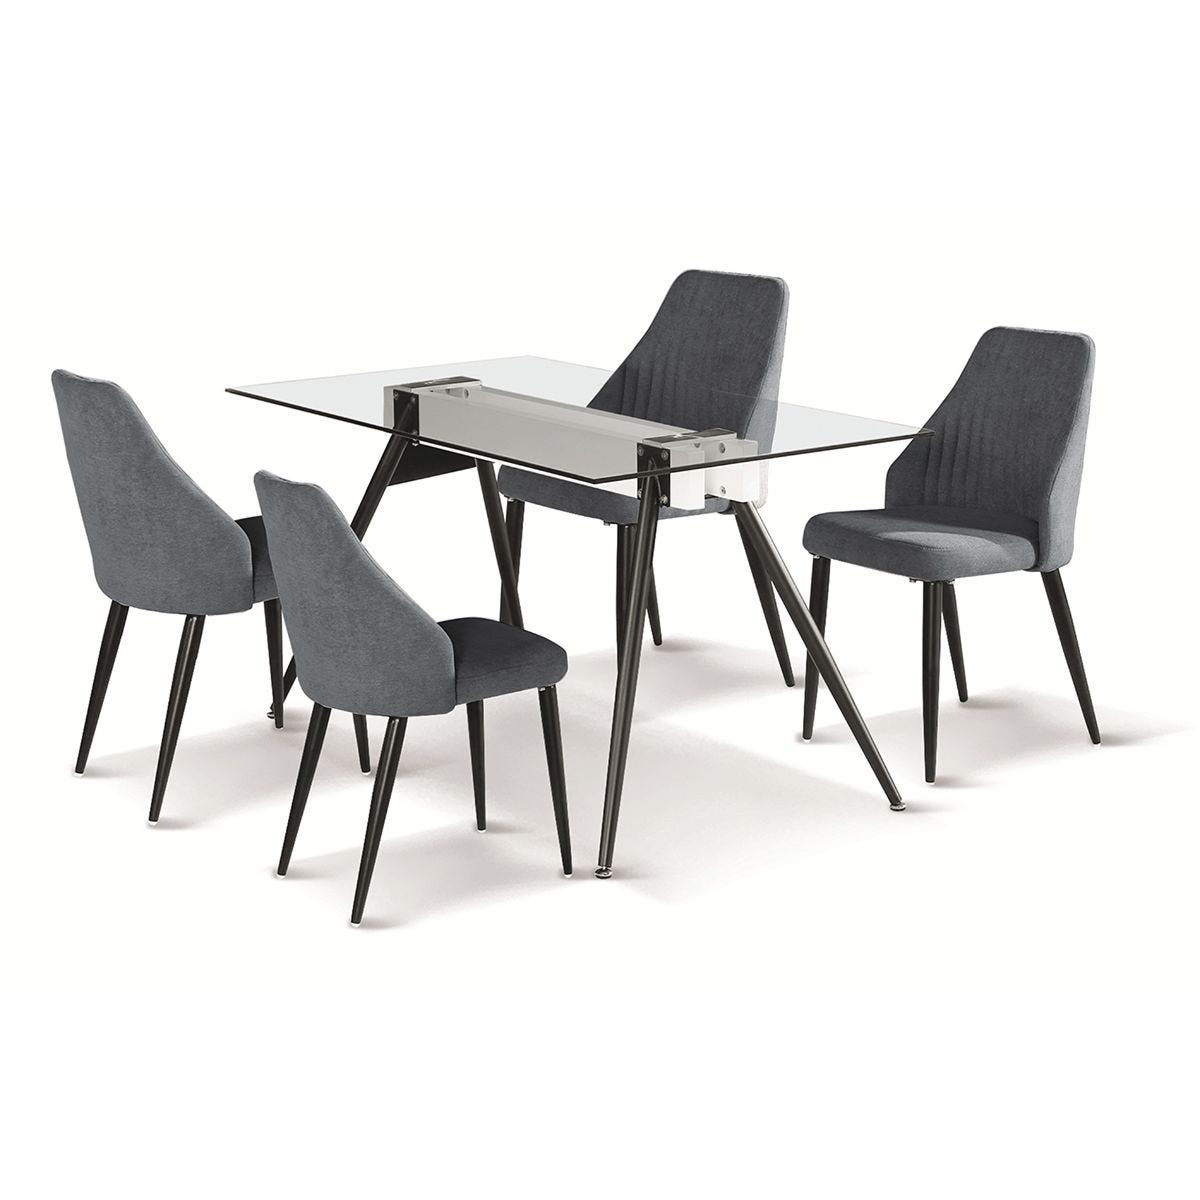 Set Of 4 Tessa Fabric Chairs with Black Metal Legs - Grey